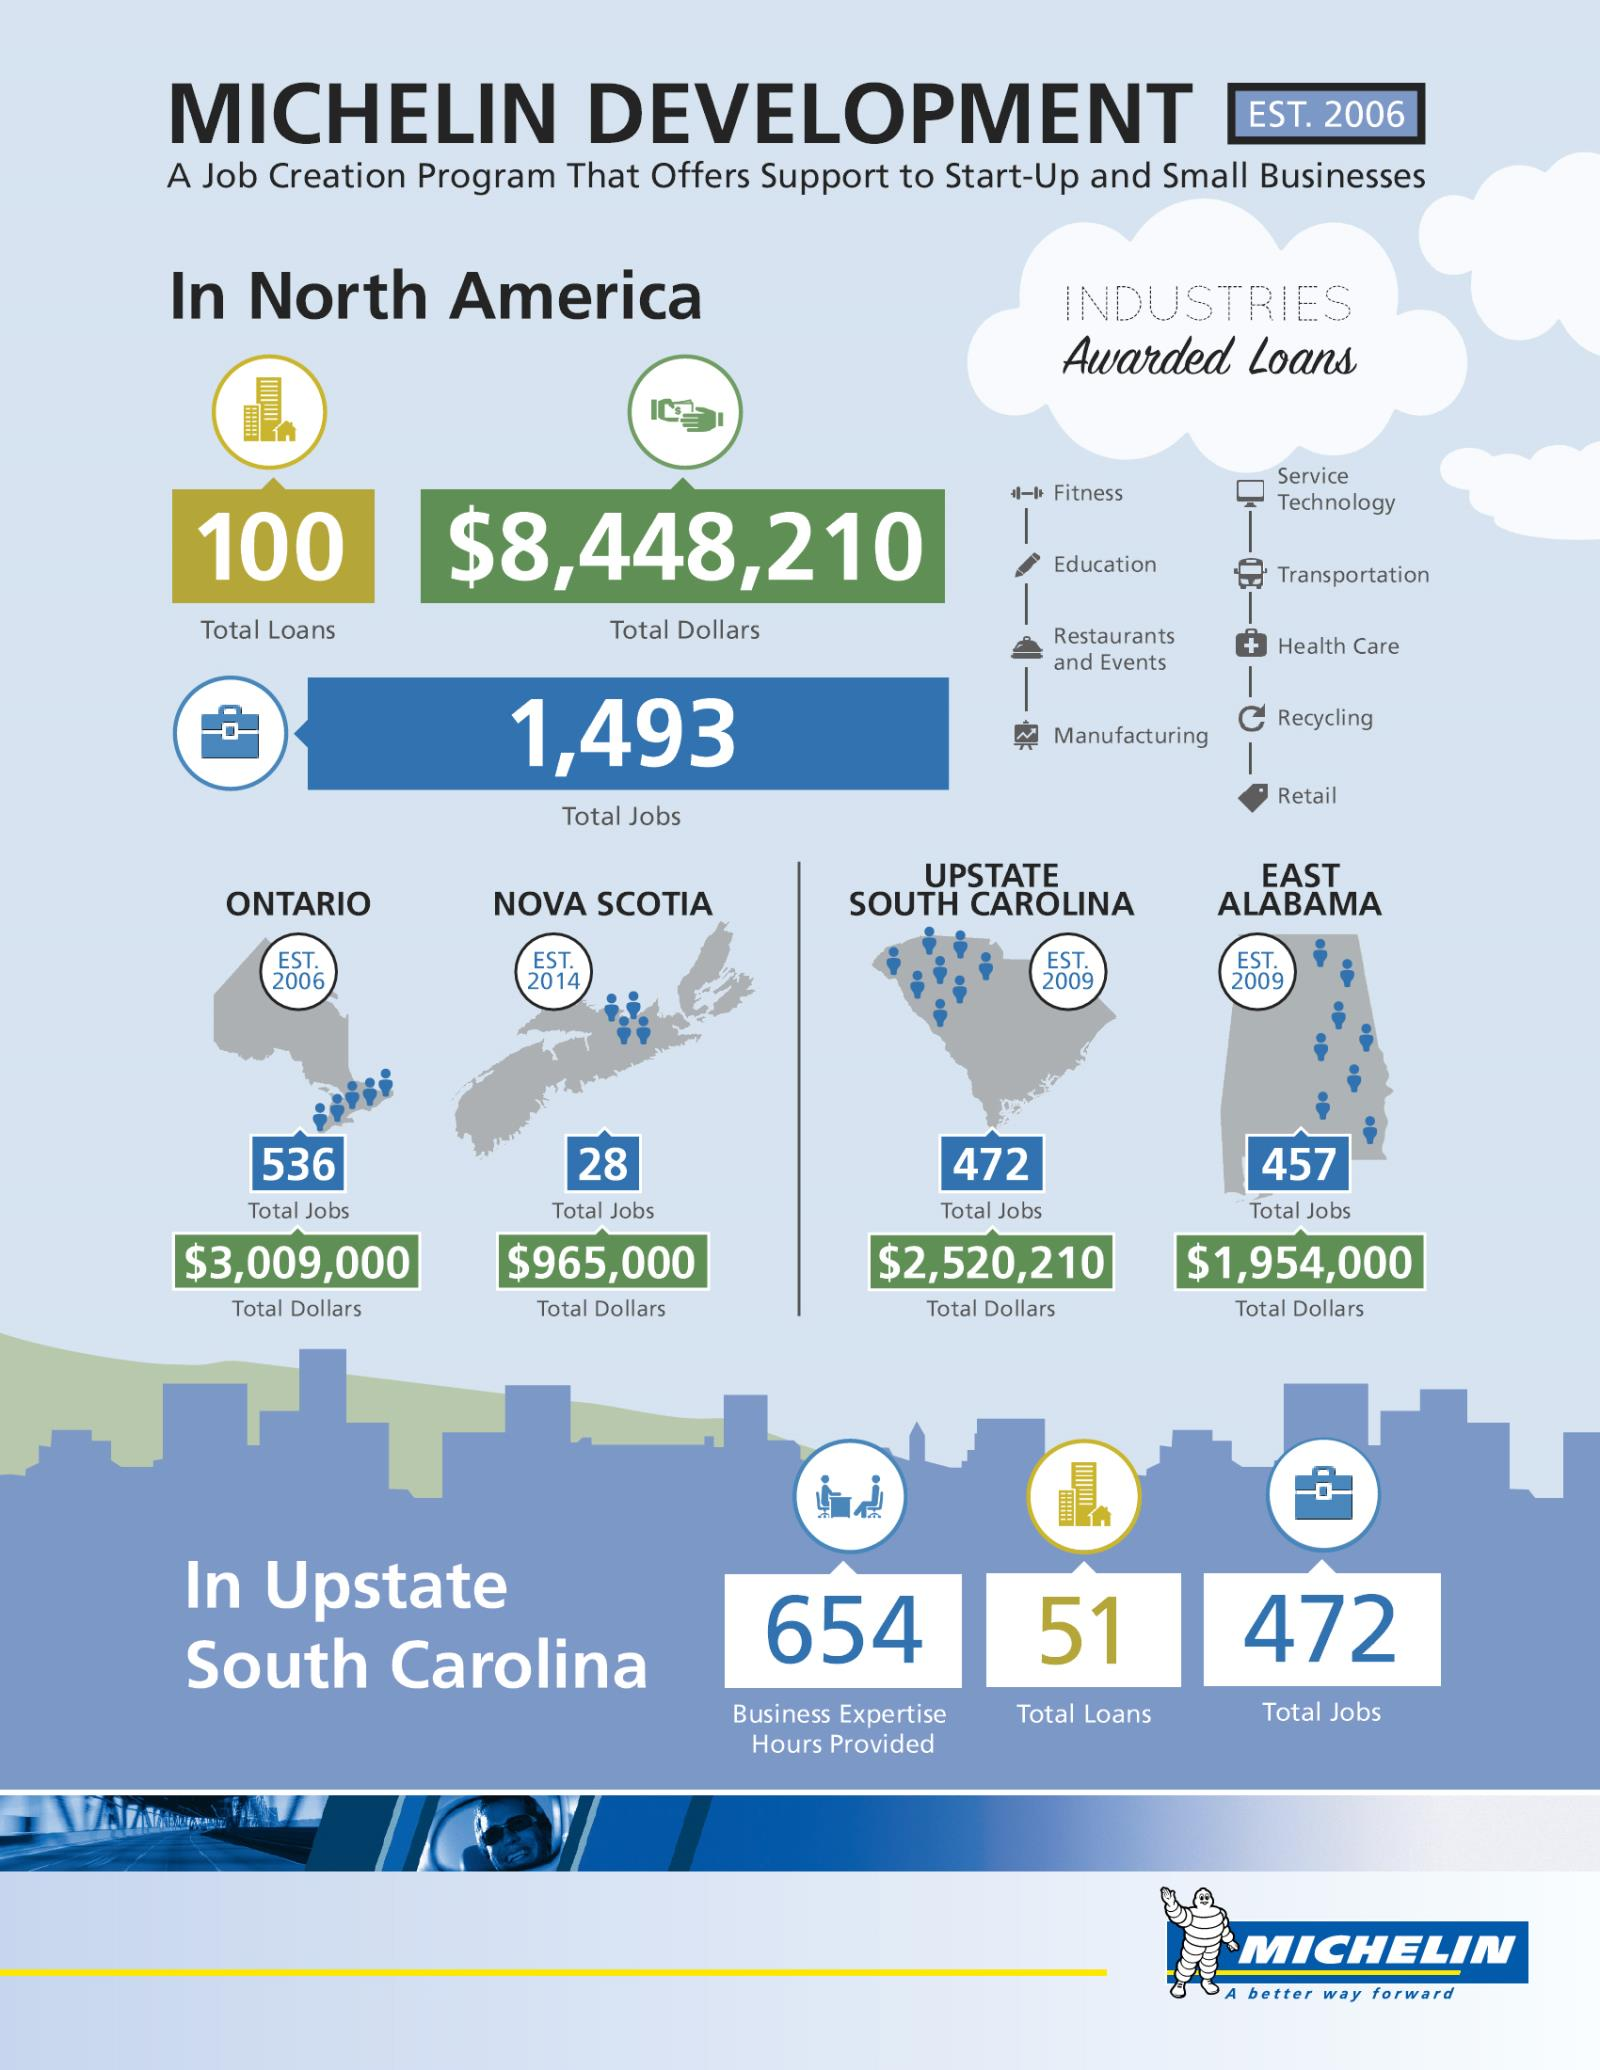 Michelin_Development_100_Loans_Infographic__1_.jpg